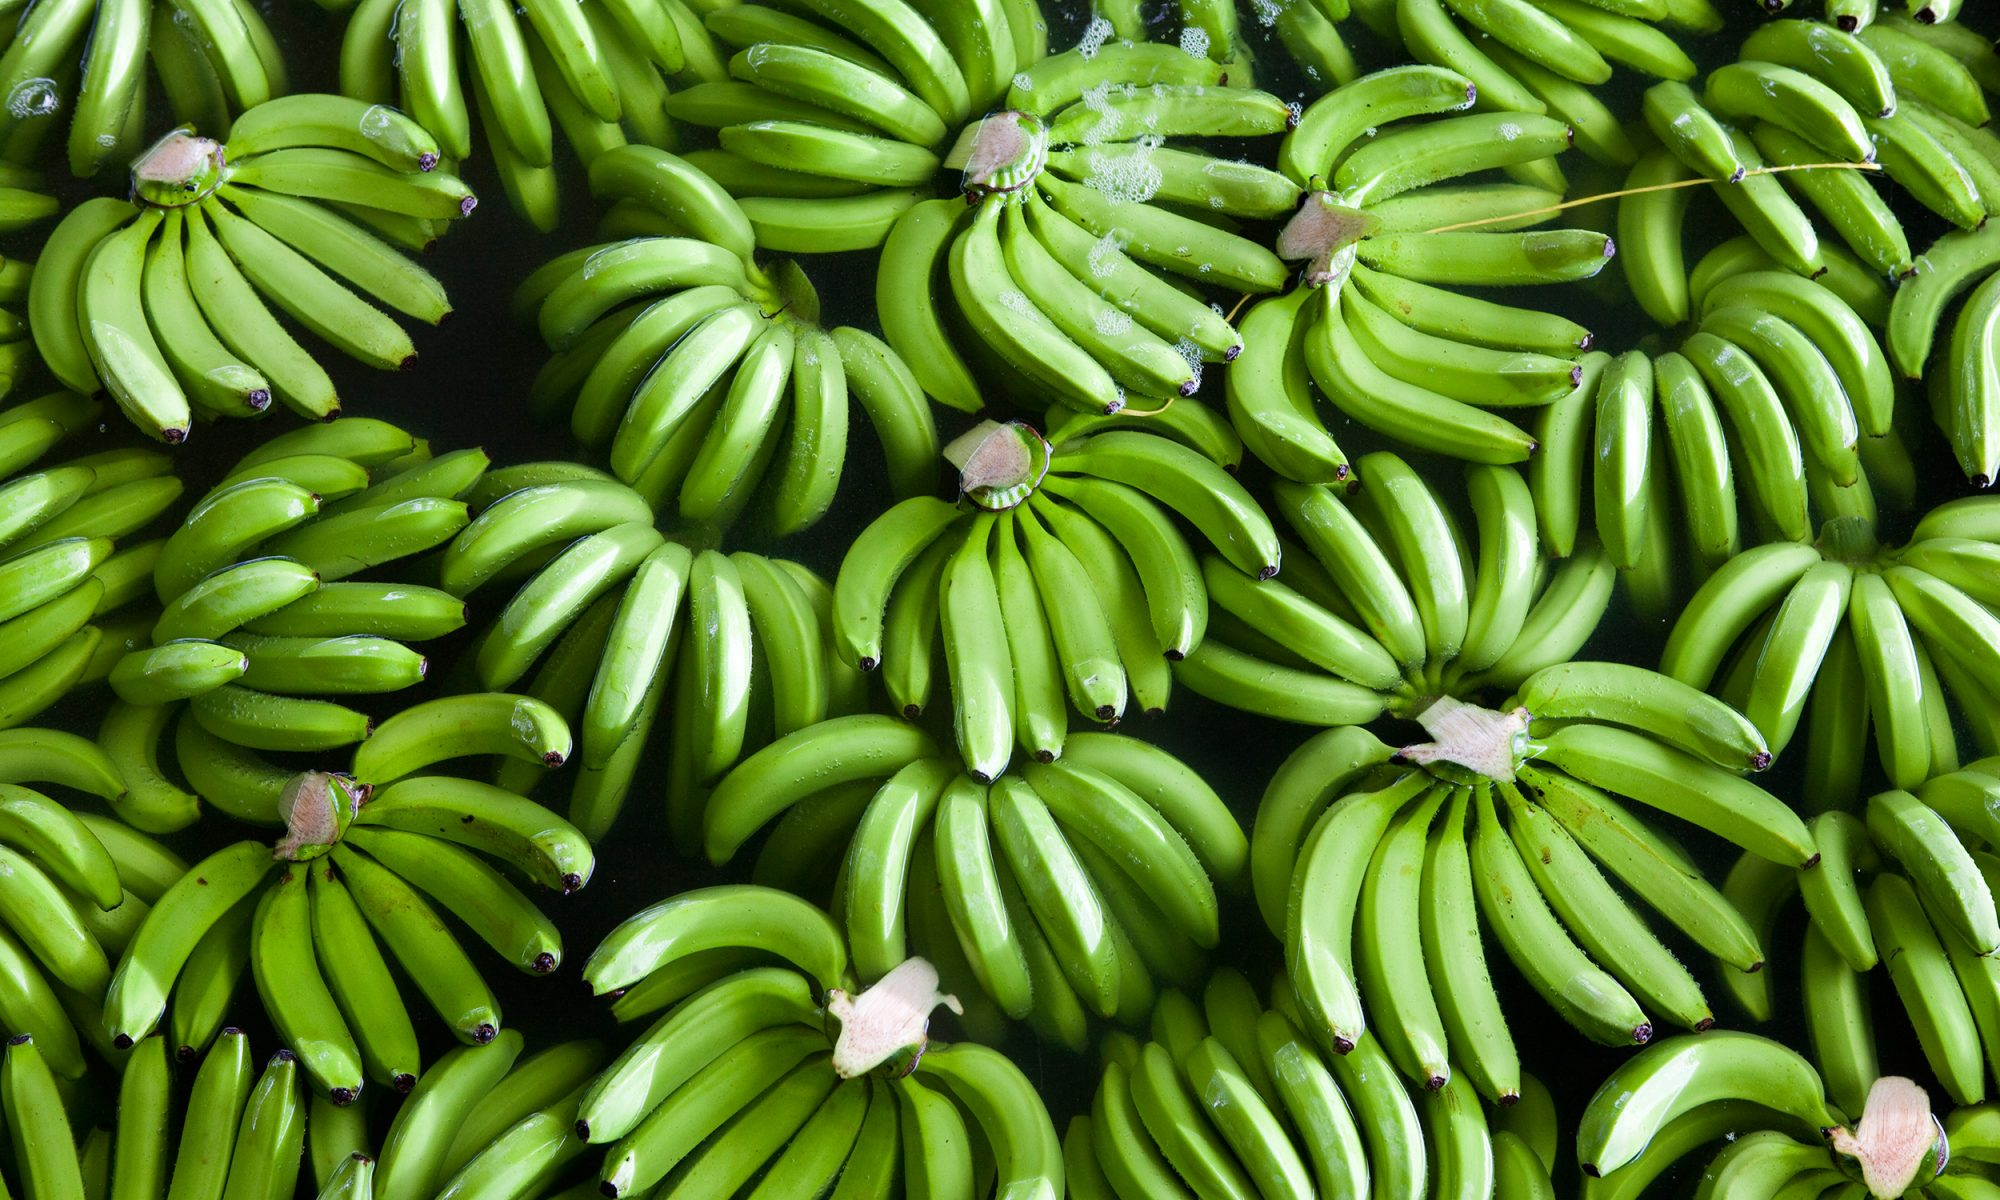 EC: What Is Green Banana Flour?